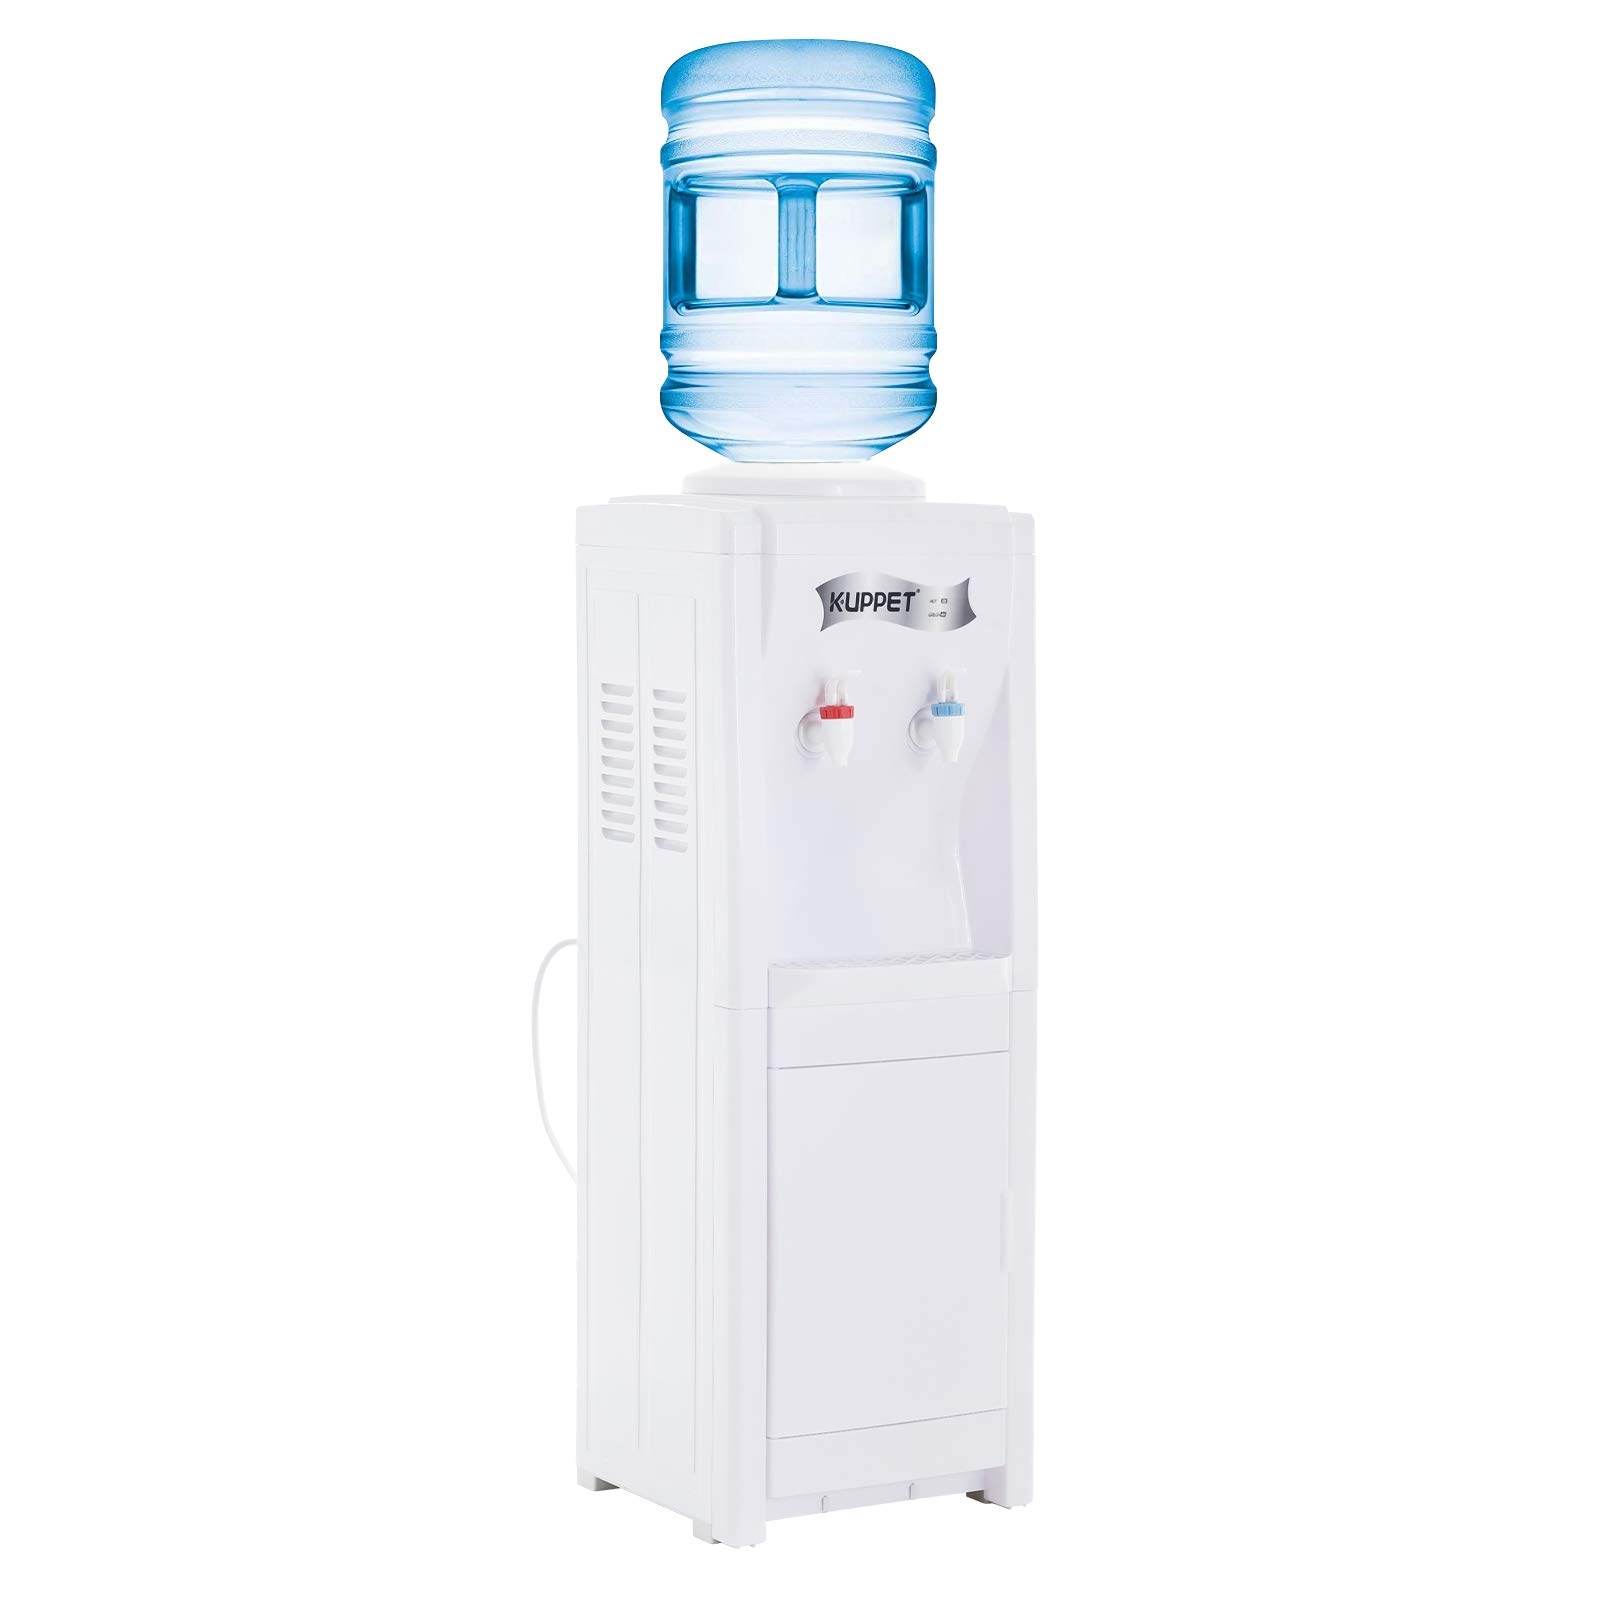 KUPPET Water Dispenser Top Loading Freestanding With Storage Cabinet, Water Coolers, Two Temperature, Hot(185℉-203℉), Normal Temperature(50℉-59℉),3-5 Gallon (32'', White) by KUPPET